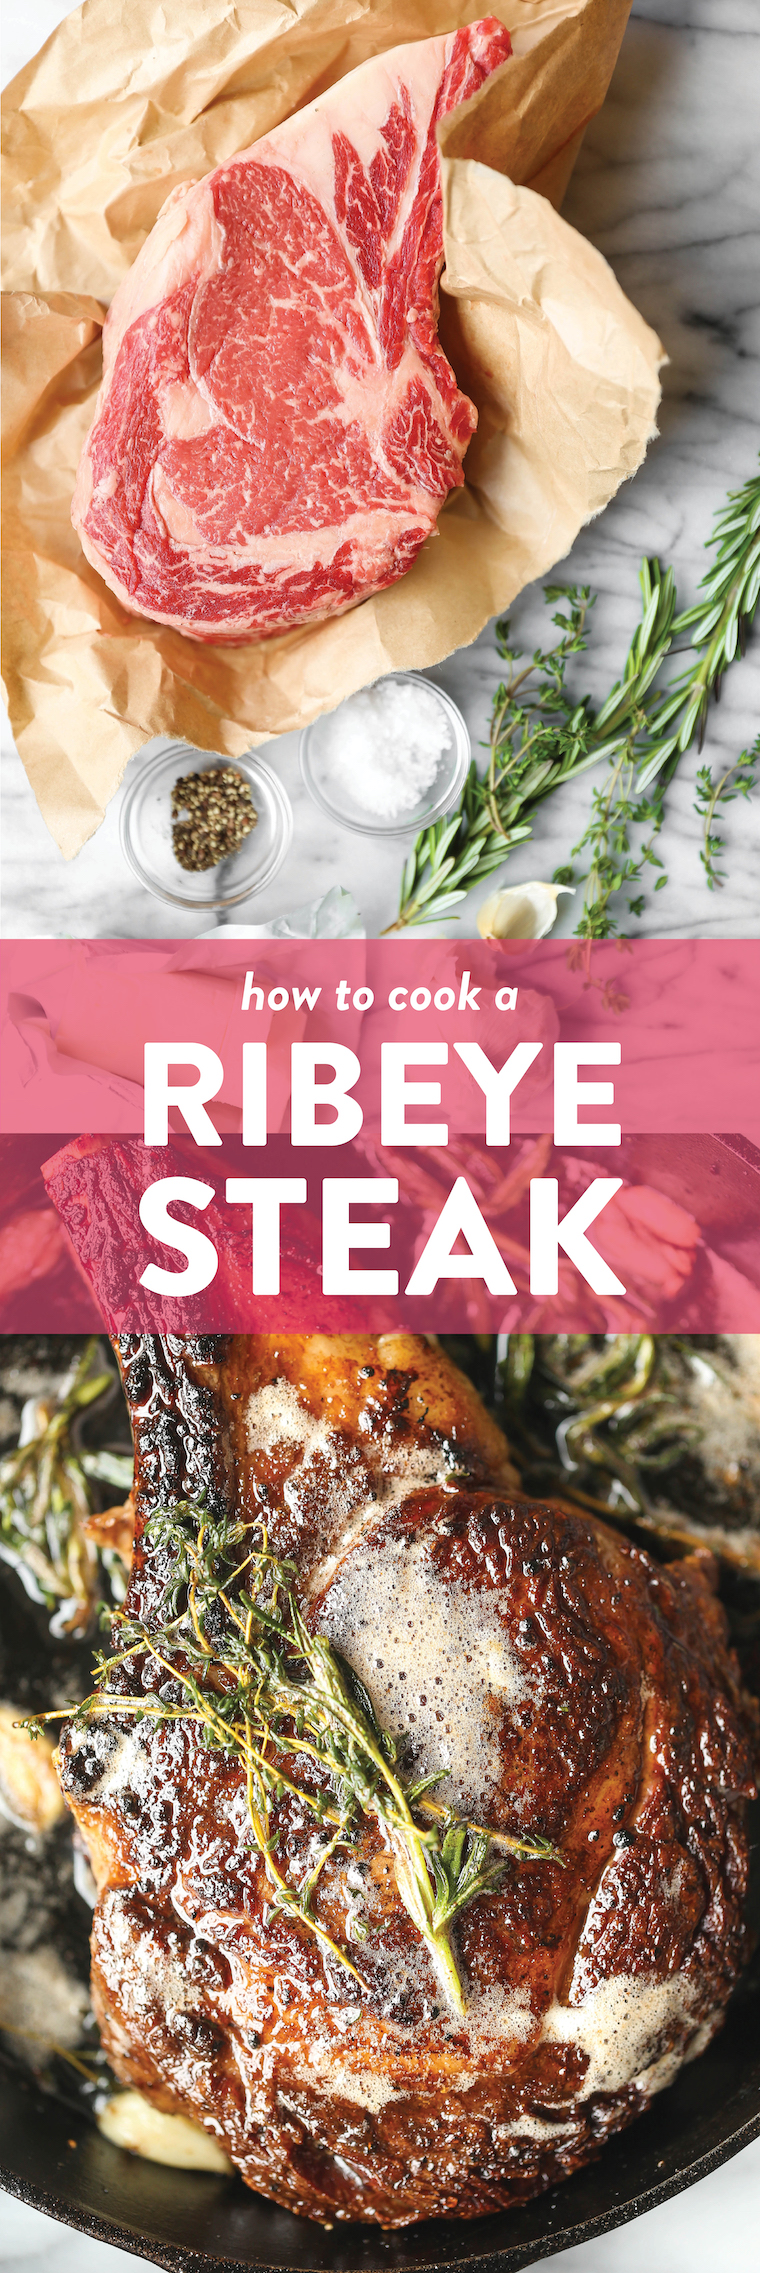 How to Cook a Ribeye Steak - Why go to a steakhouse when you can make the most perfect ribeye right at home? Pan seared with the best garlicky herb butter!